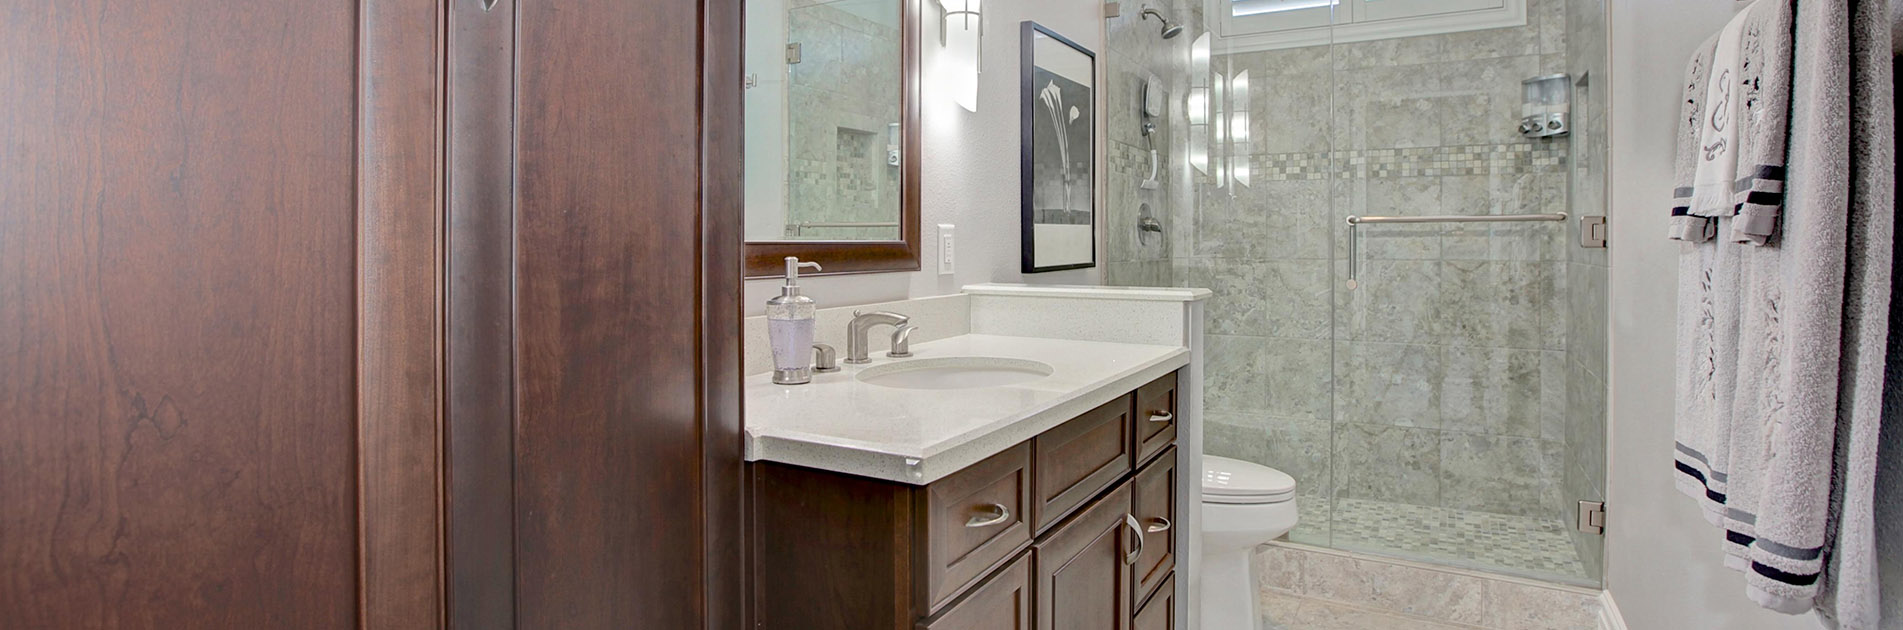 Bathroom Remodeling Orange County home remodeling orange county | kitchen & bathroom remodeling